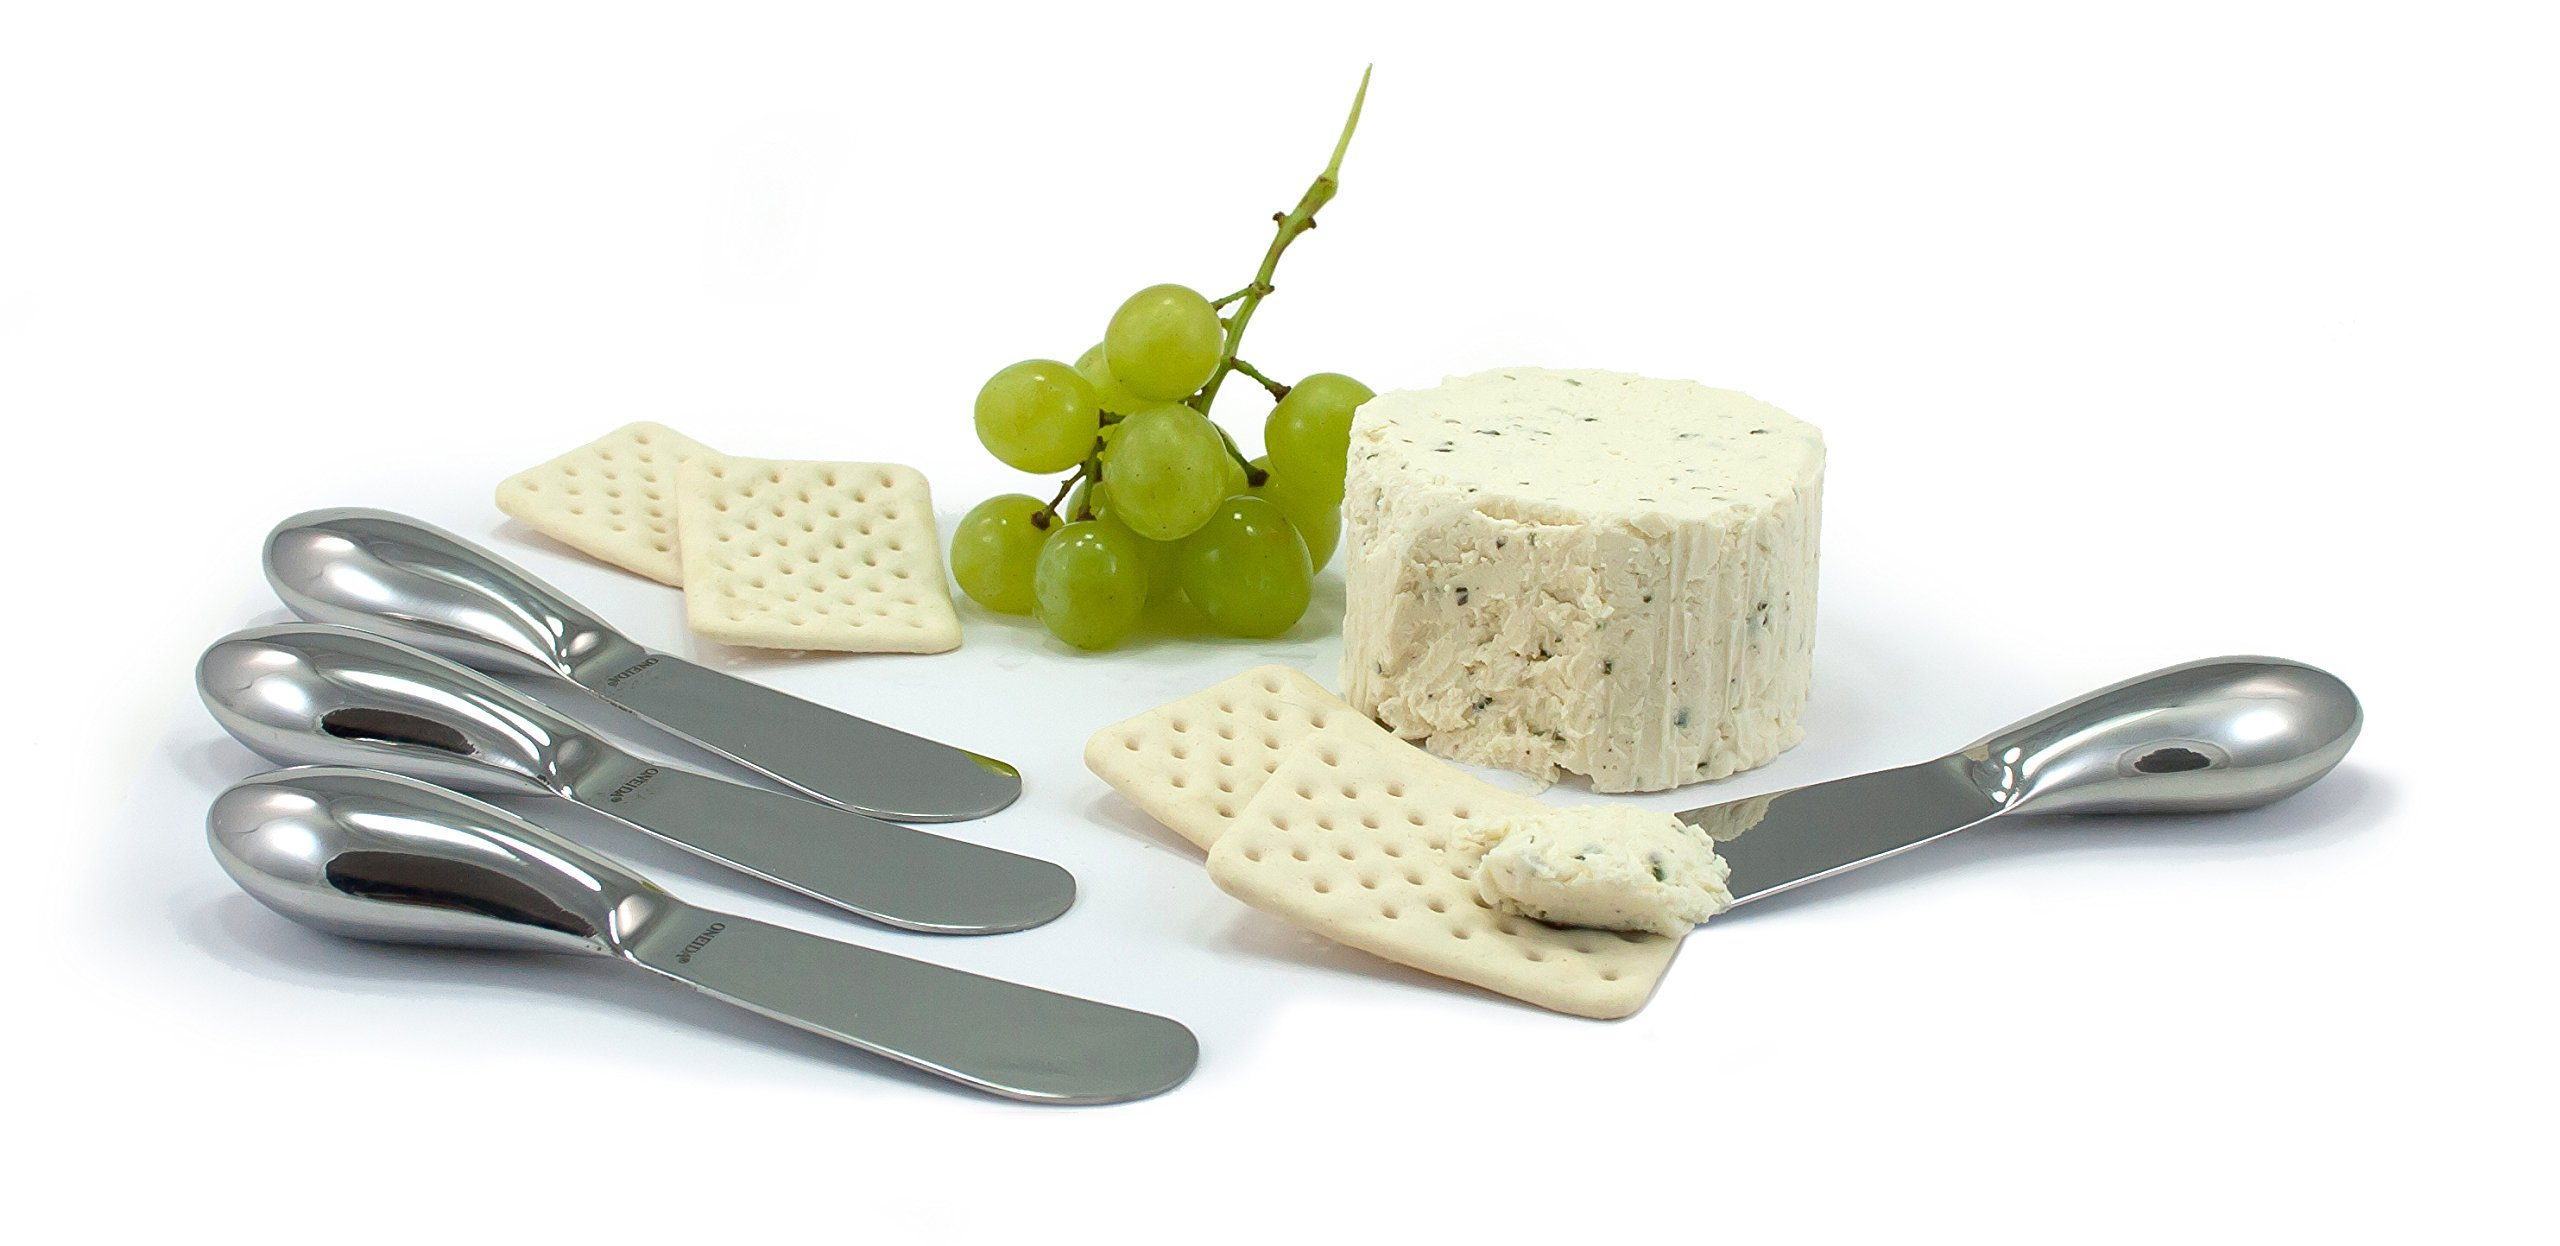 Oneida 4-Piece Cheese Spreader Set, Stainless Steel